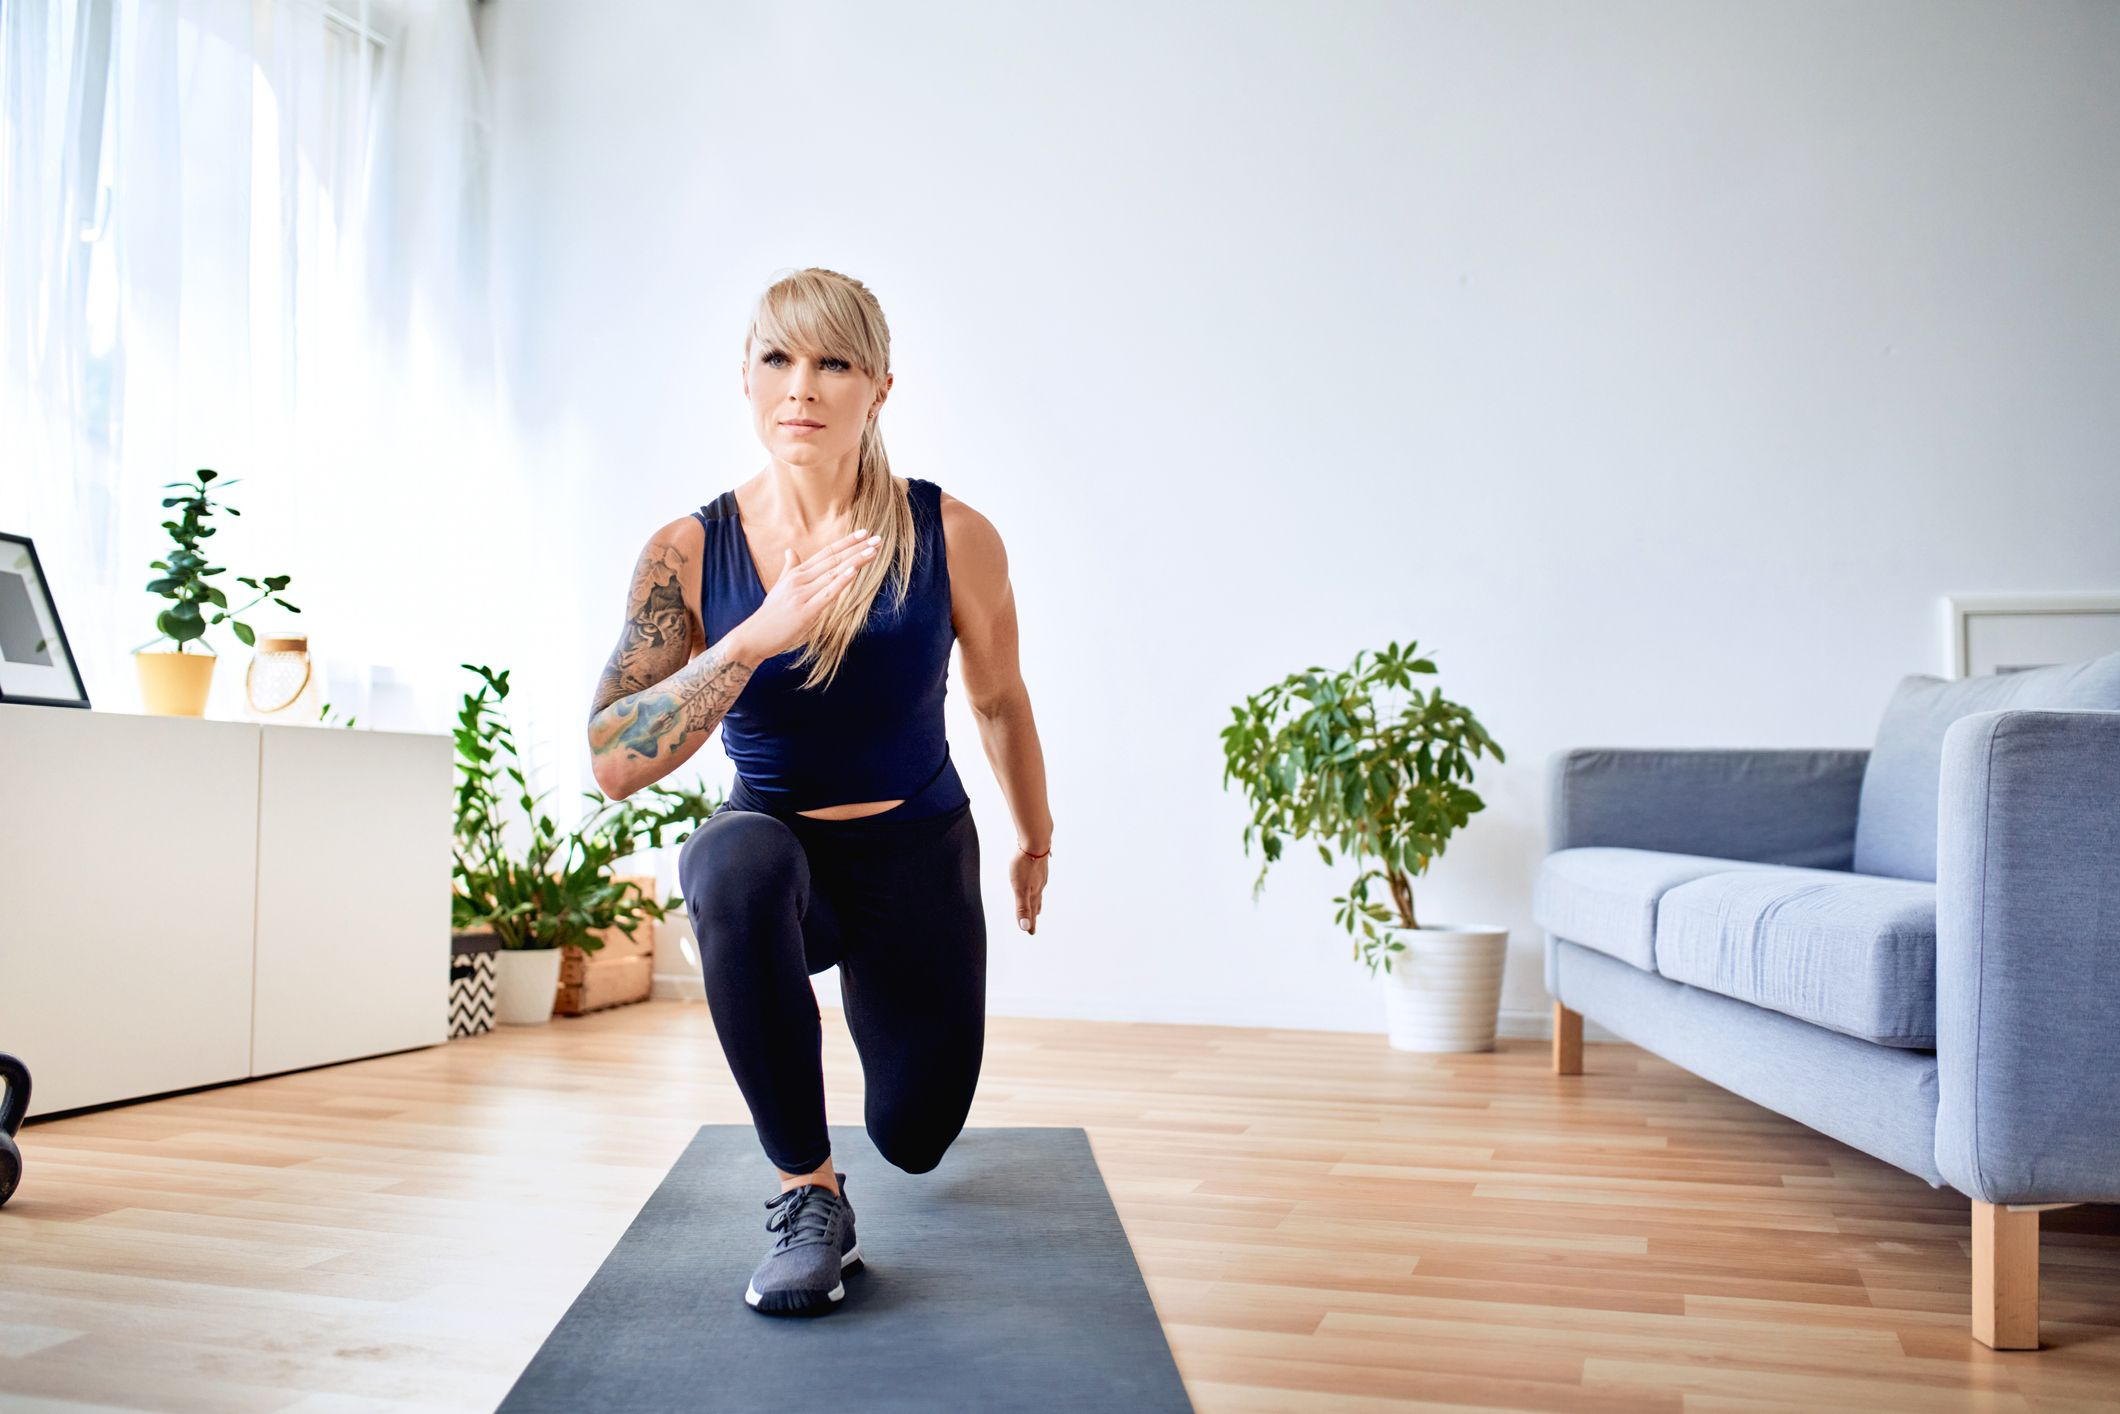 This at-home HIIT workout strengthens your core in just 20 minutes